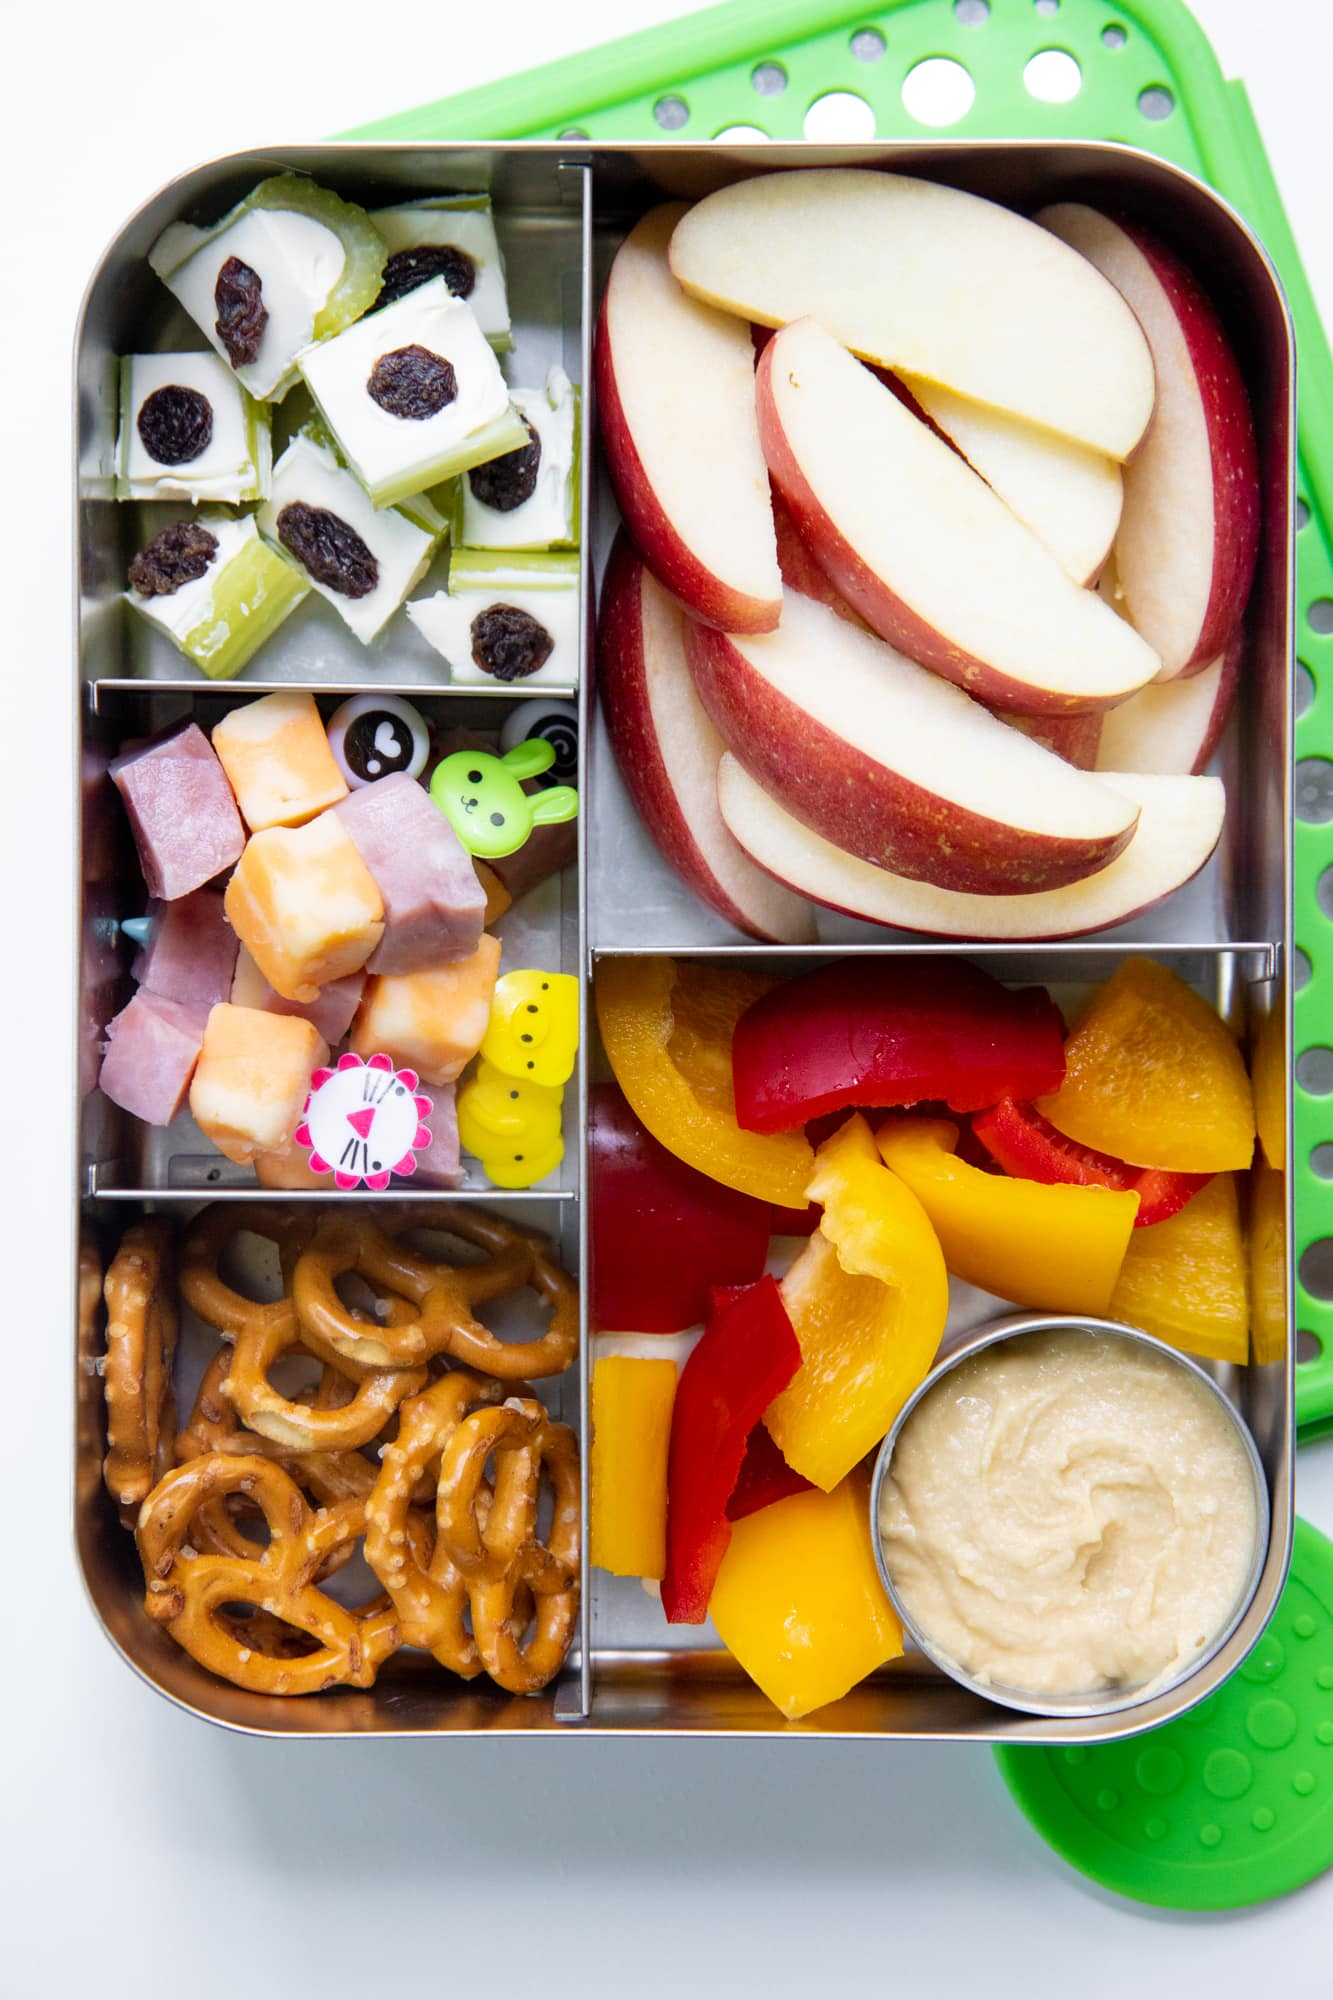 Close-up of a bento-style stainless steel lunch box filled with apple slices, pretzels, ham and cheese on toothpicks, bell peppers and hummus, and stuffed celery.